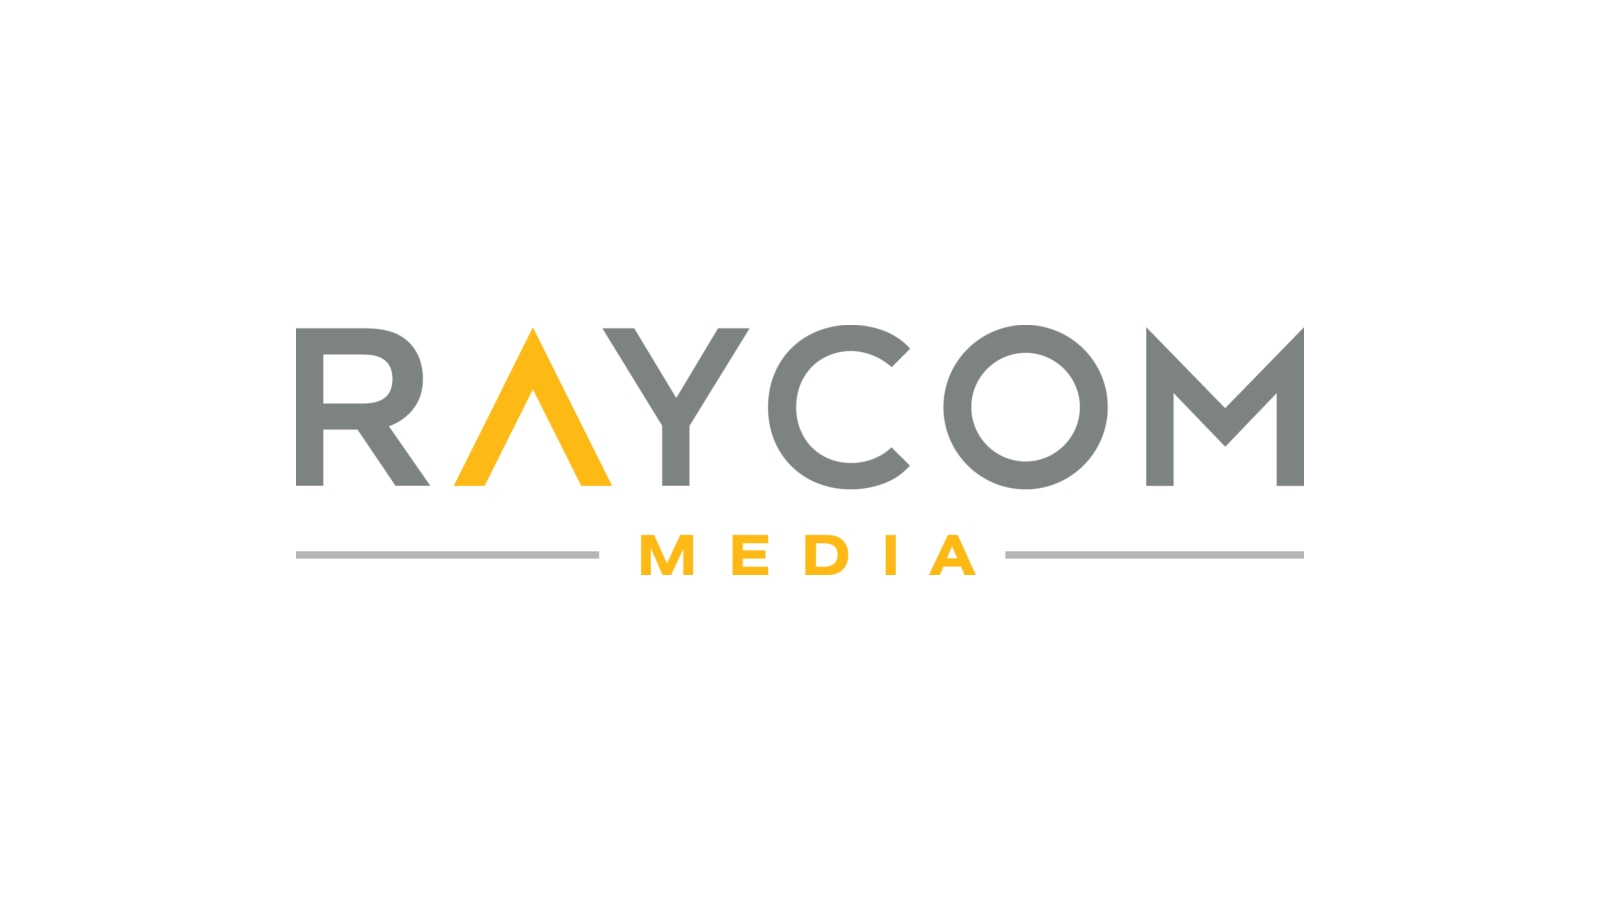 Raycom Media is the Saints preseason television provider for the Gulf South Region